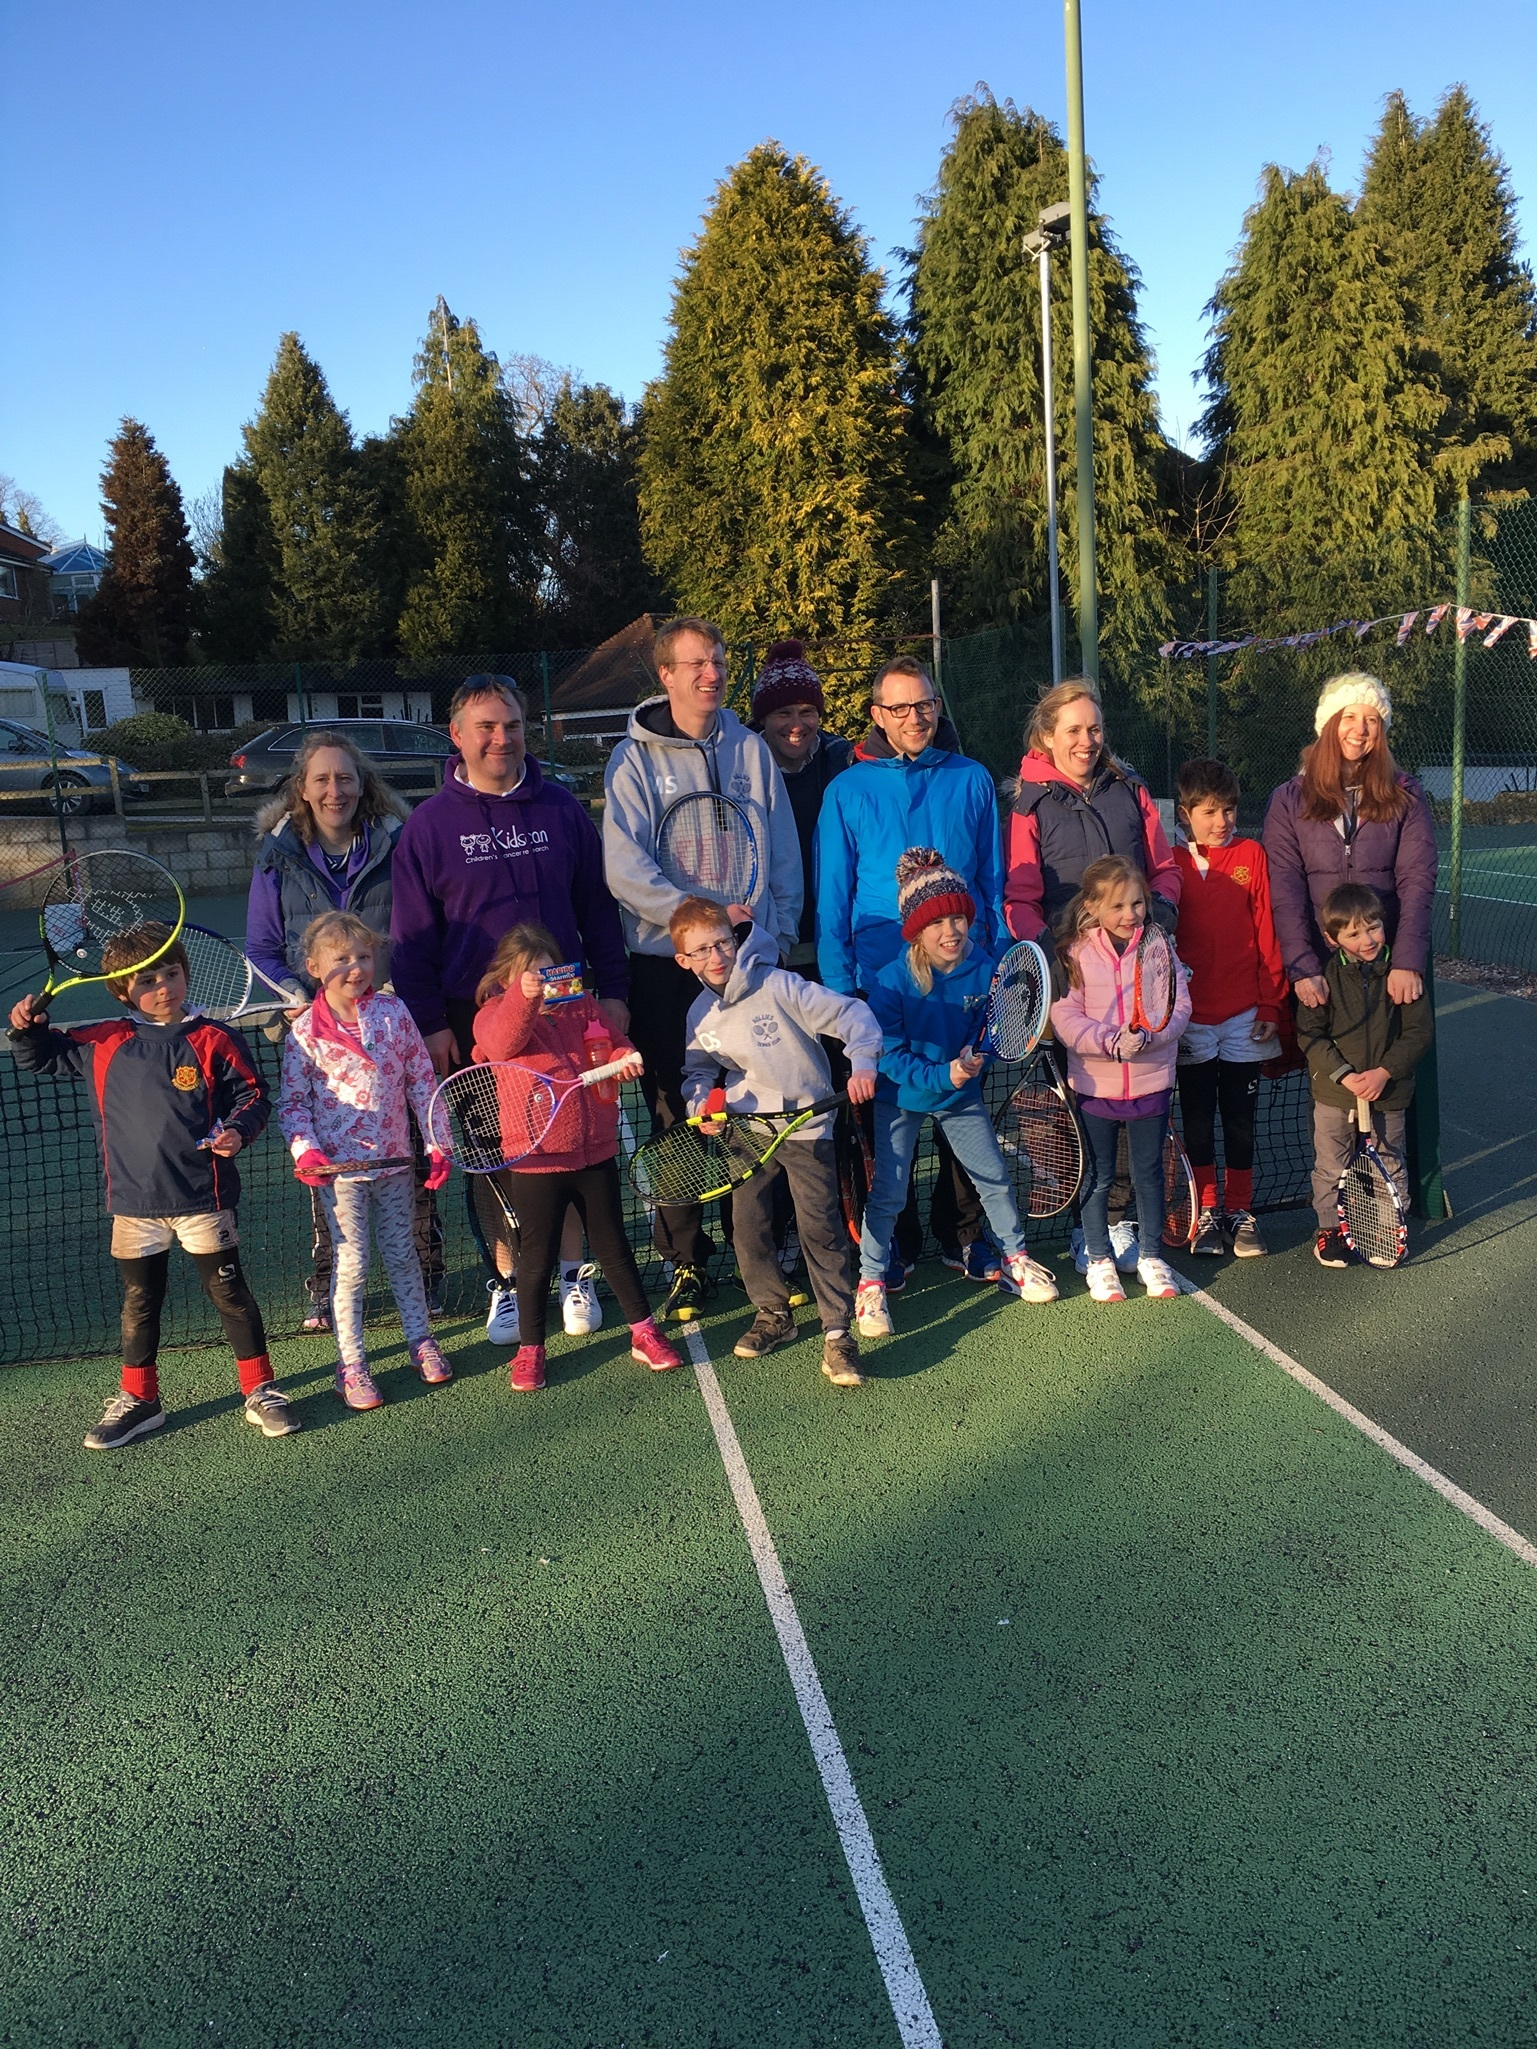 People of all ages enjoy tennis at The Hollies in Whitchurch